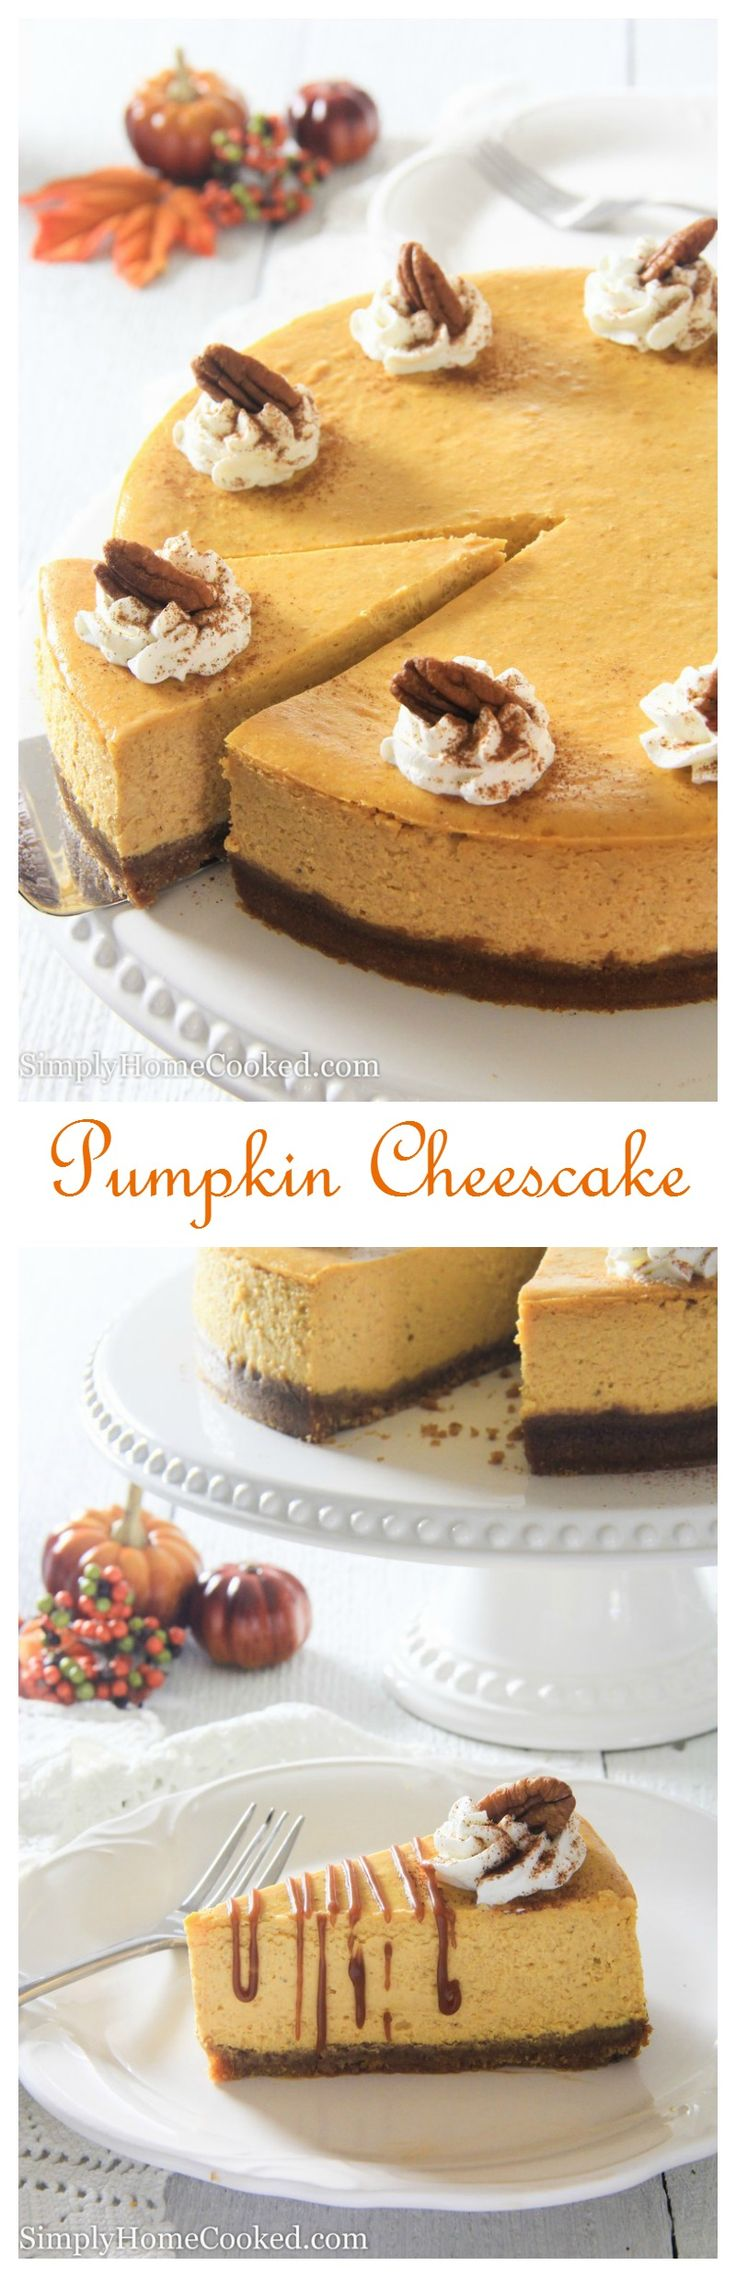 Make this pumpkin cheesecake for Thanksgiving dessert. It's the perfect cross between cheesecake and pumpkin pie.